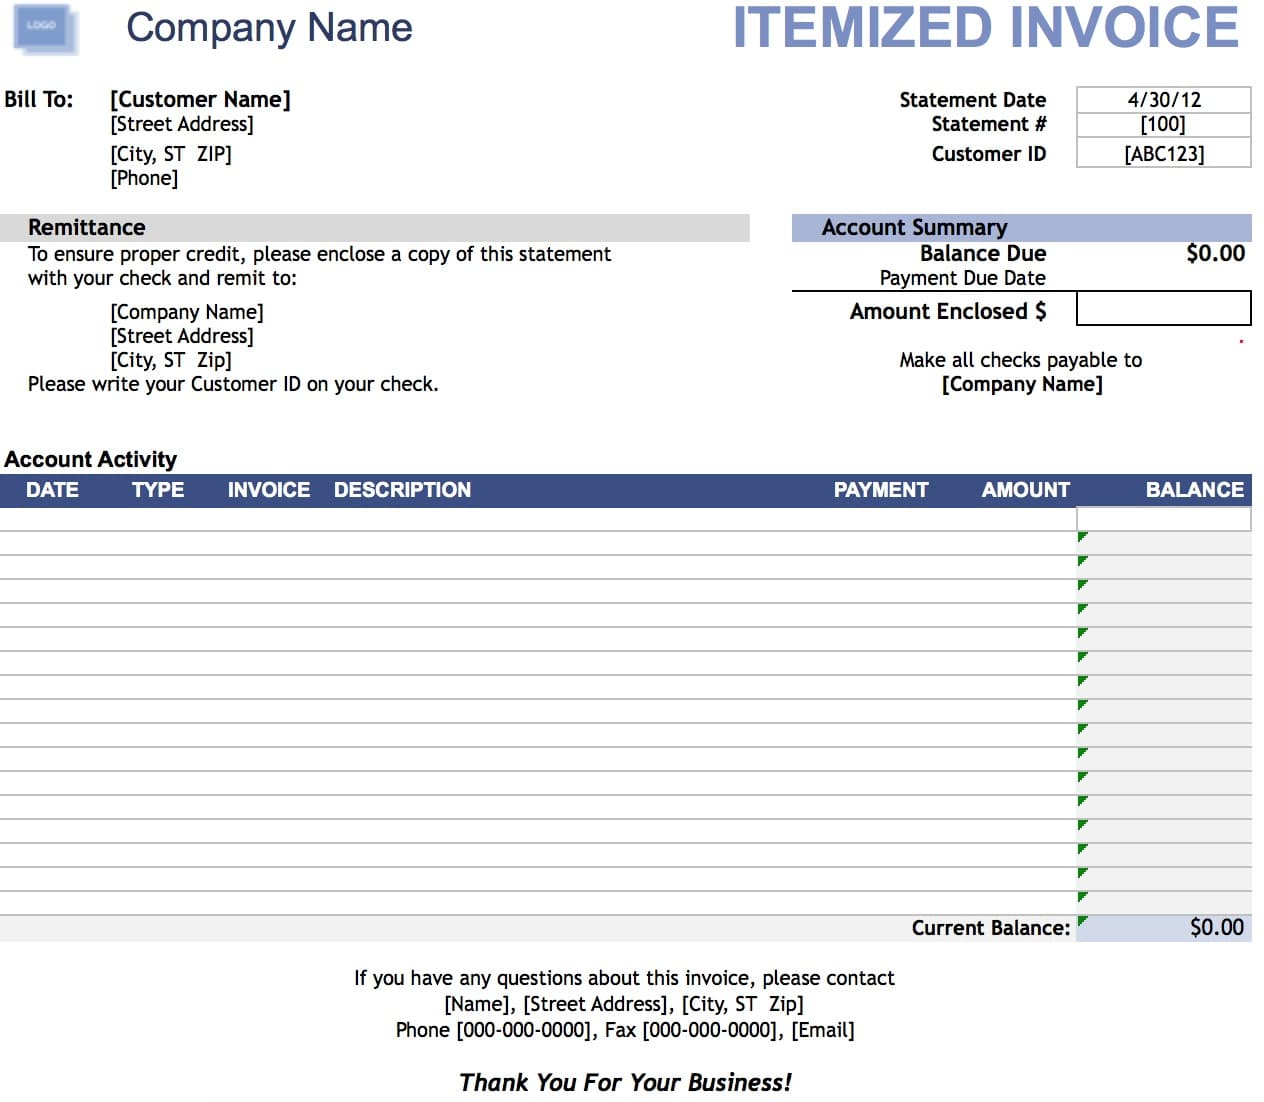 free itemized invoice template | excel | pdf | word (.doc), Invoice templates